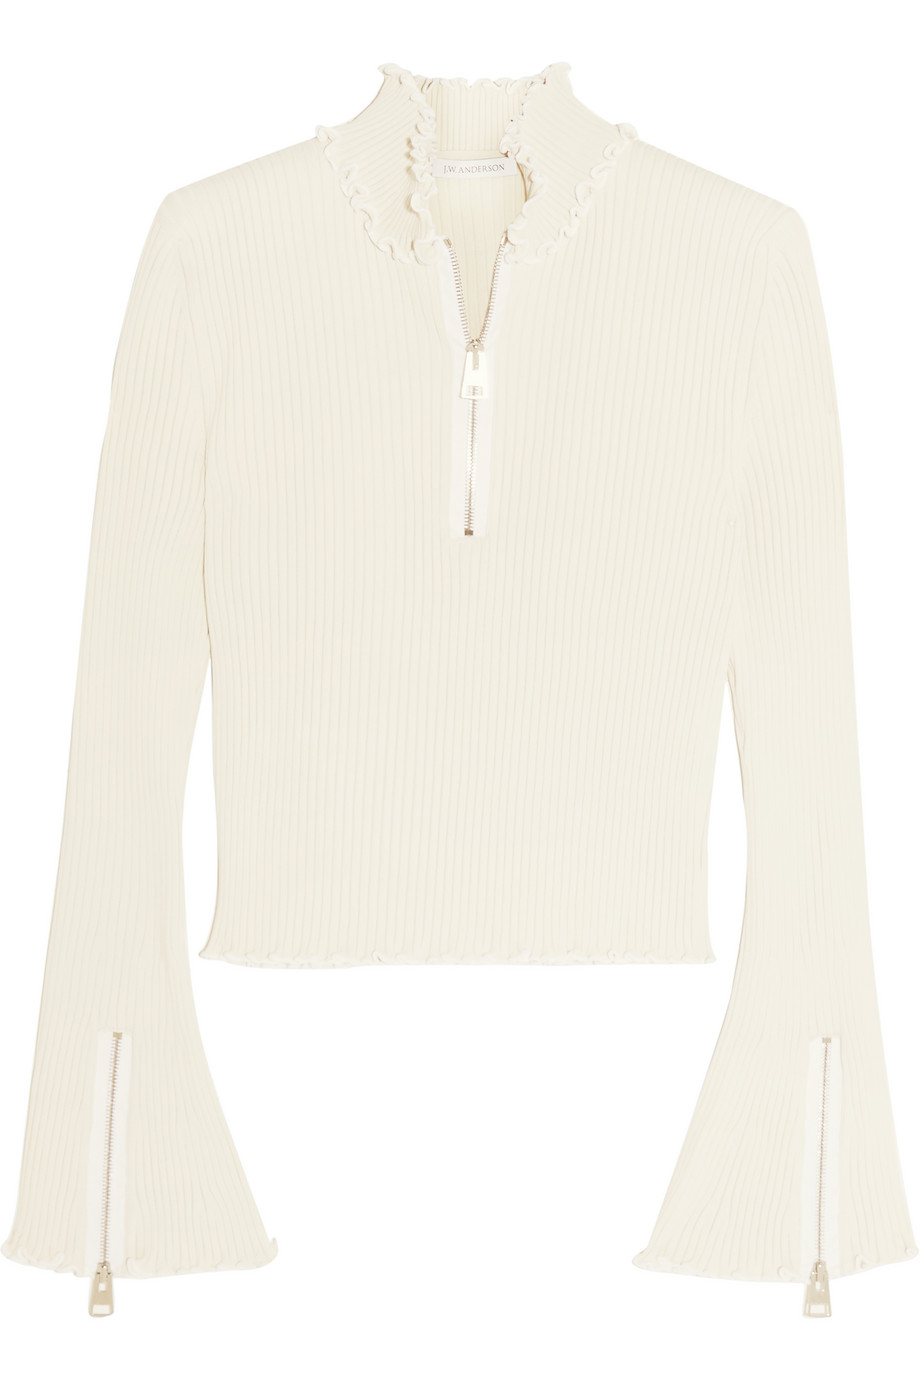 J.W.Anderson Ruffle-Trimmed Ribbed Jersey Turtleneck Sweater, Size: M